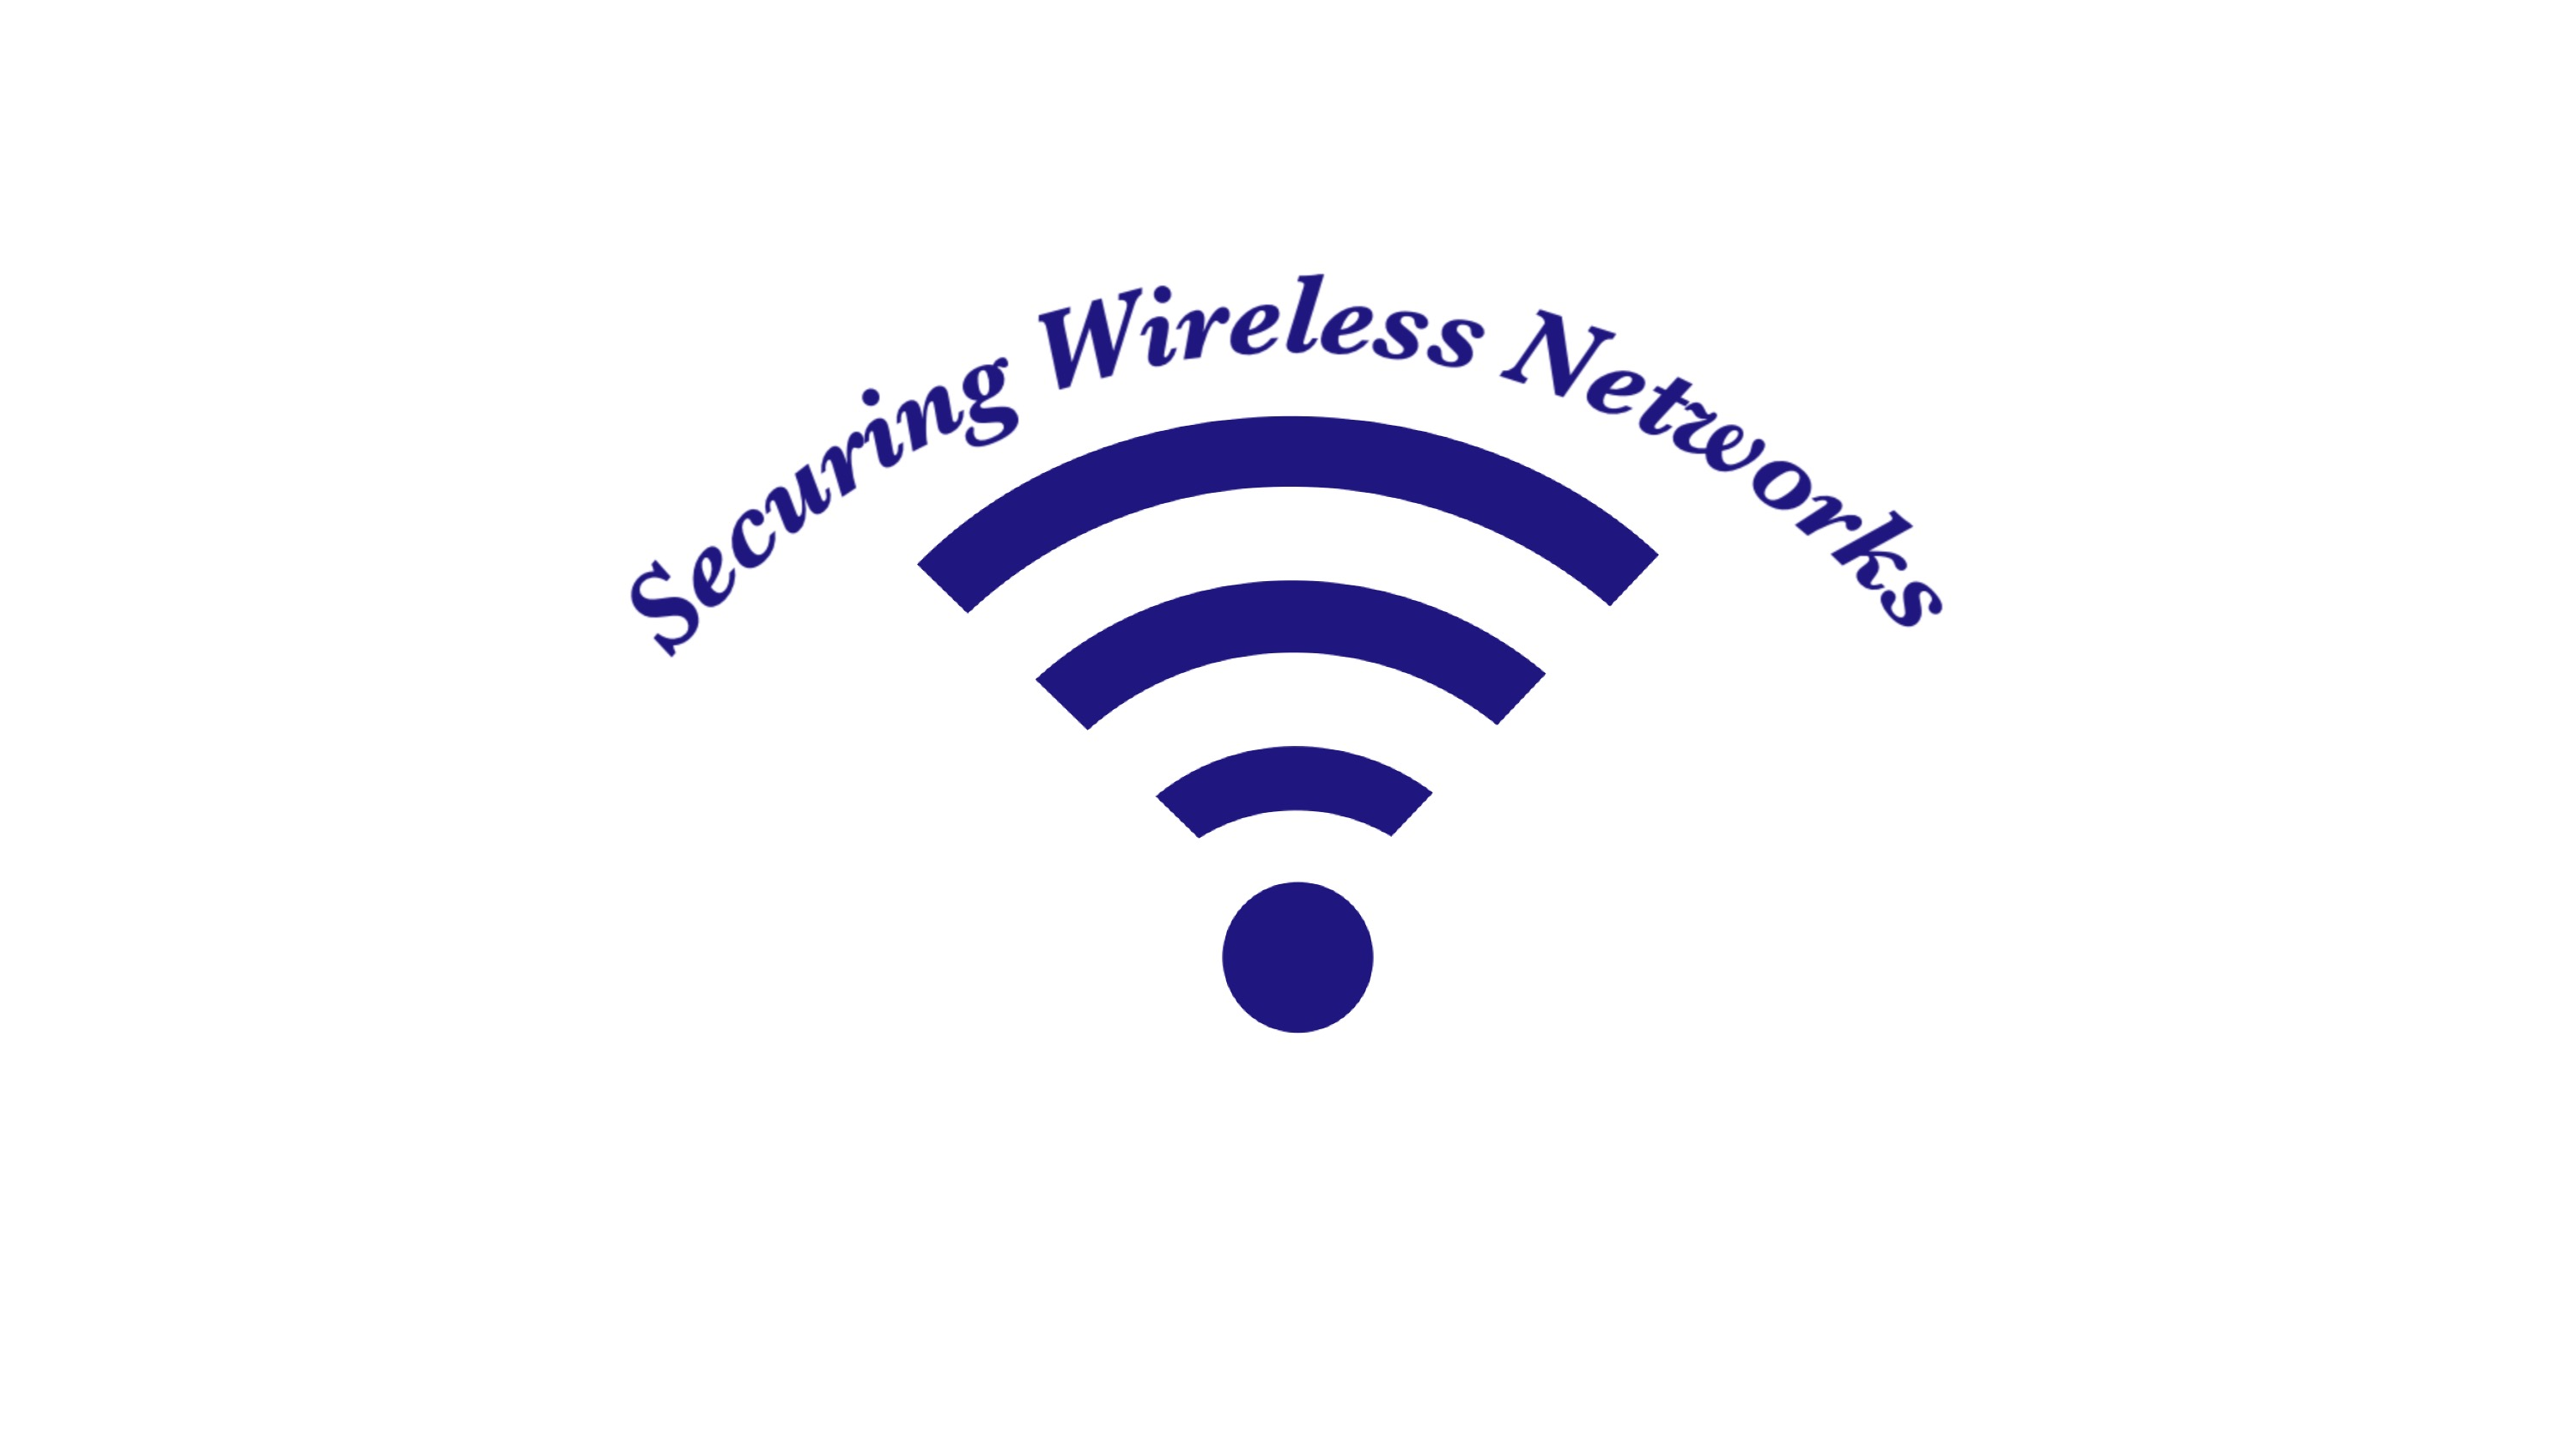 Security Wireless Networks